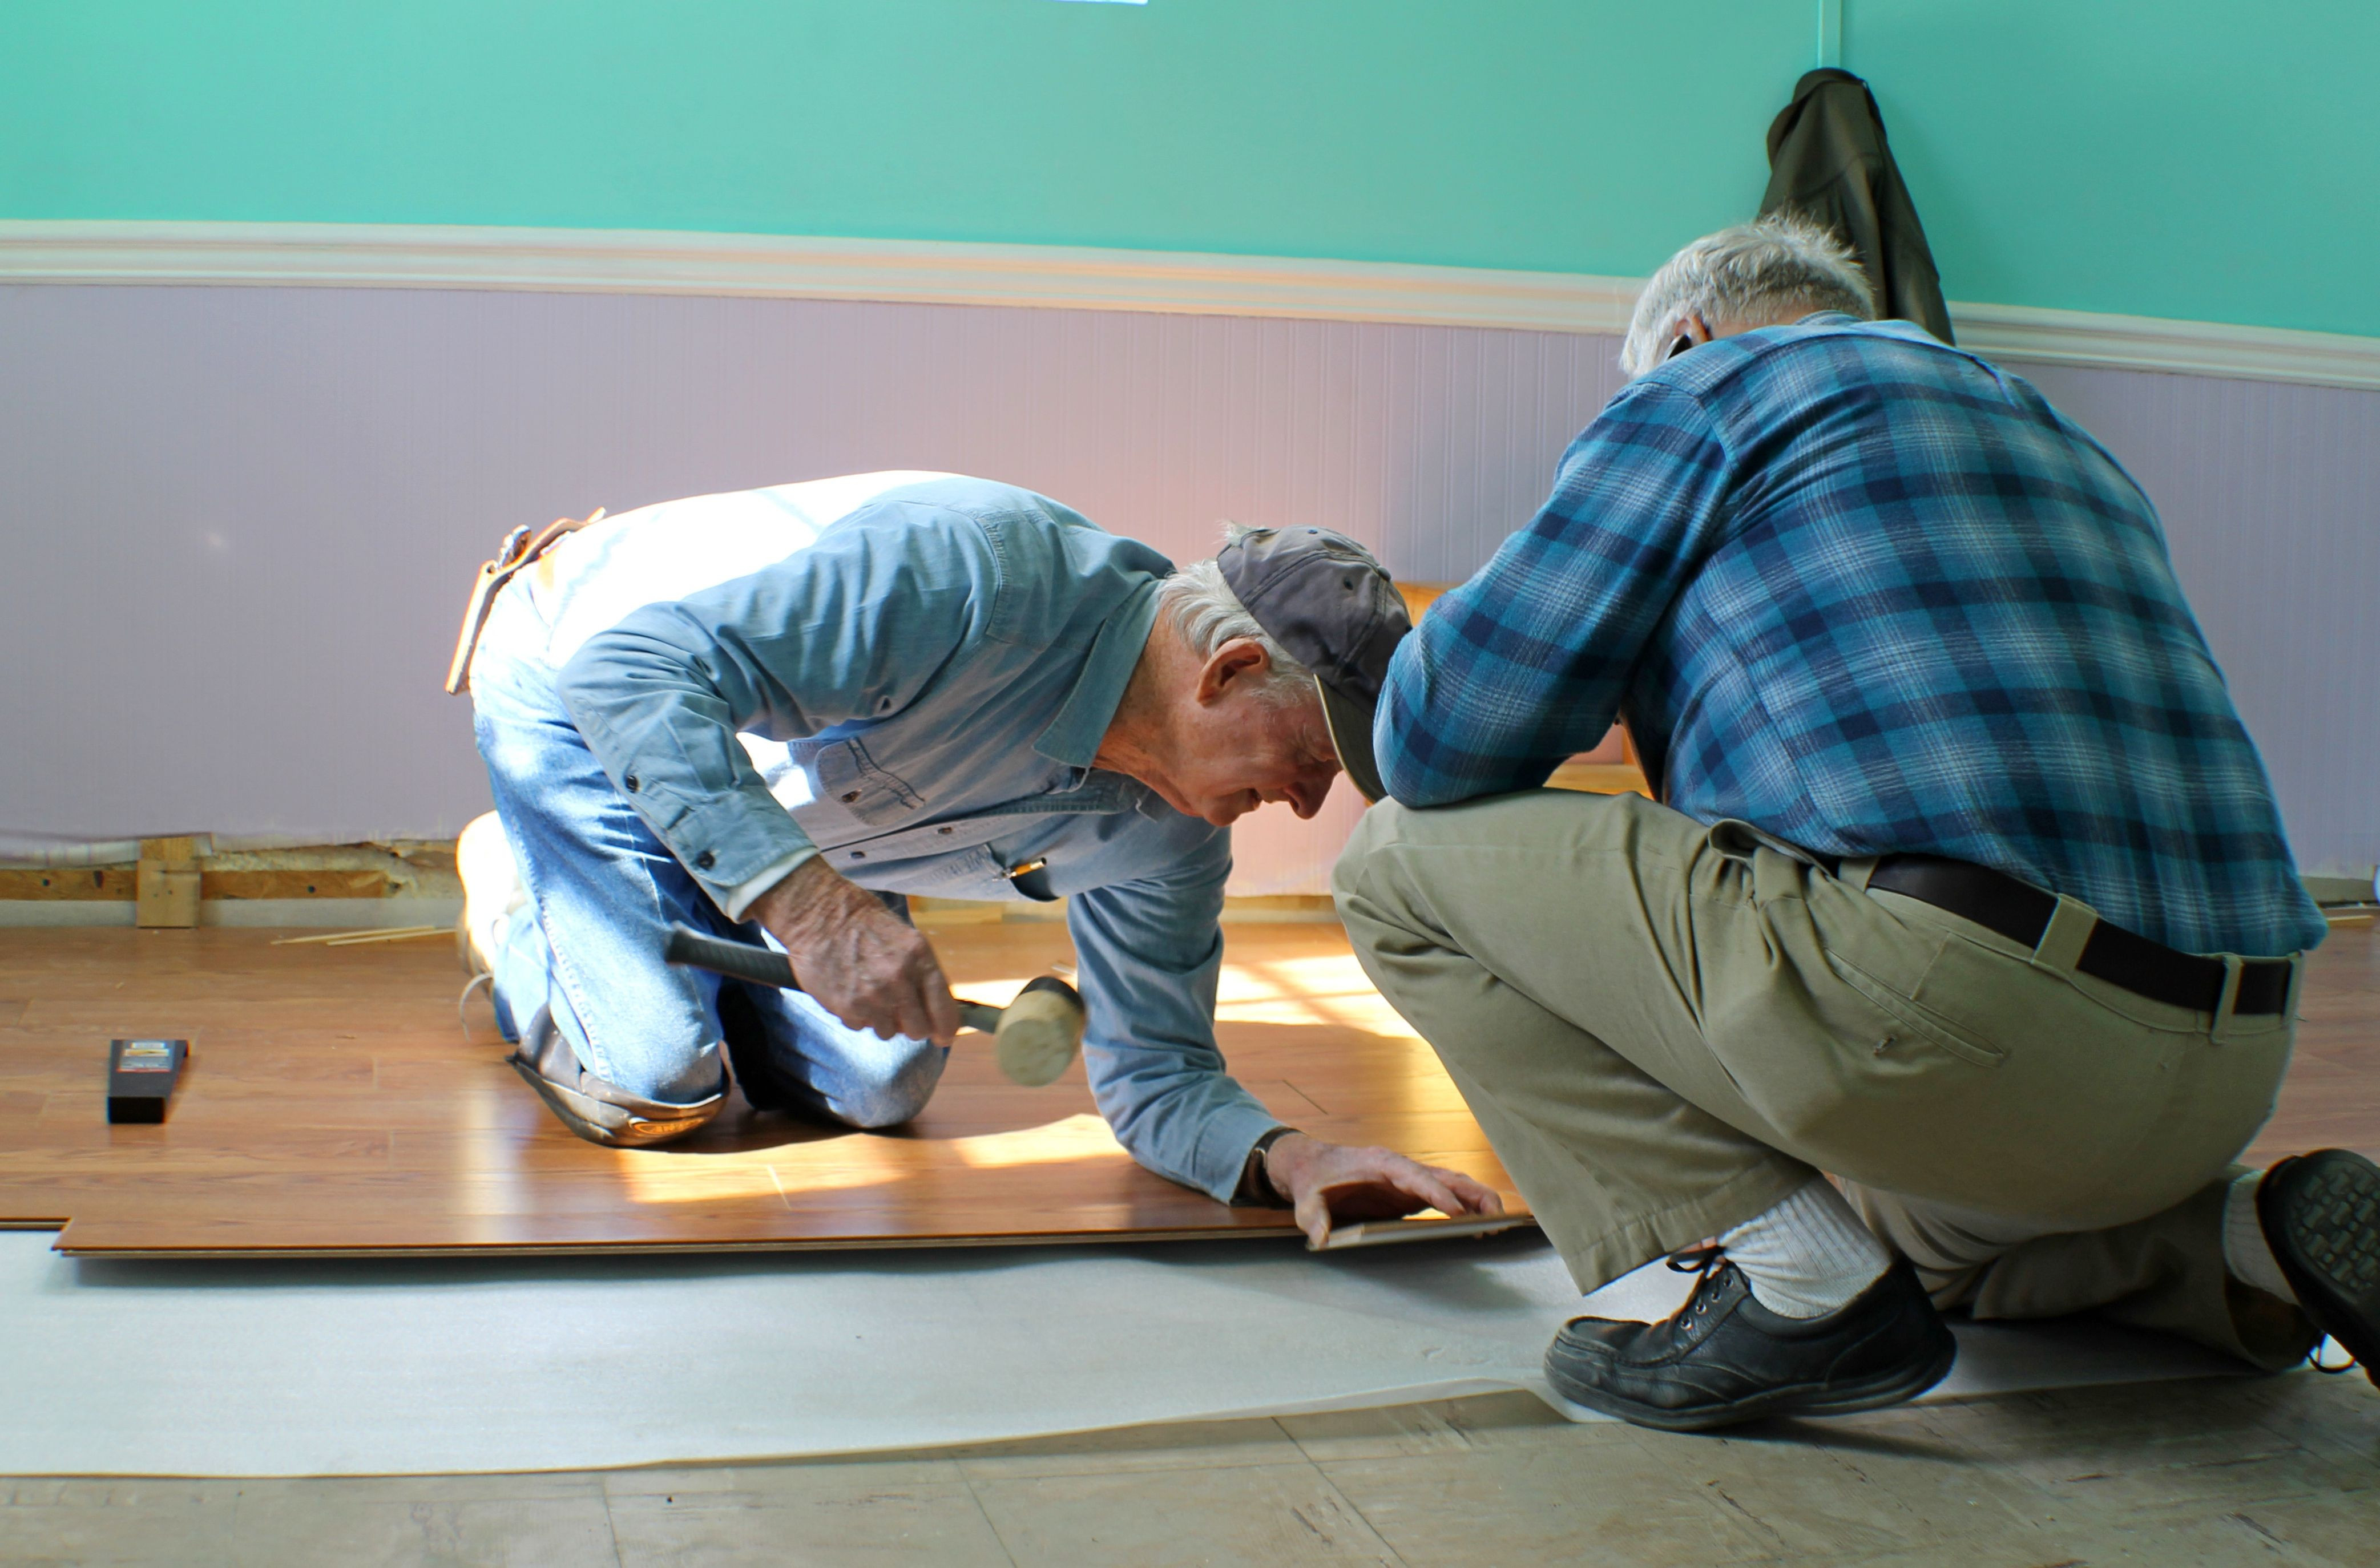 best hardwood floor installers near me of common flooring types currently used in renovation and building with regard to laminate floor assembly setting tongue and groove 5ba27f2146e0fb00241f7302 jpg